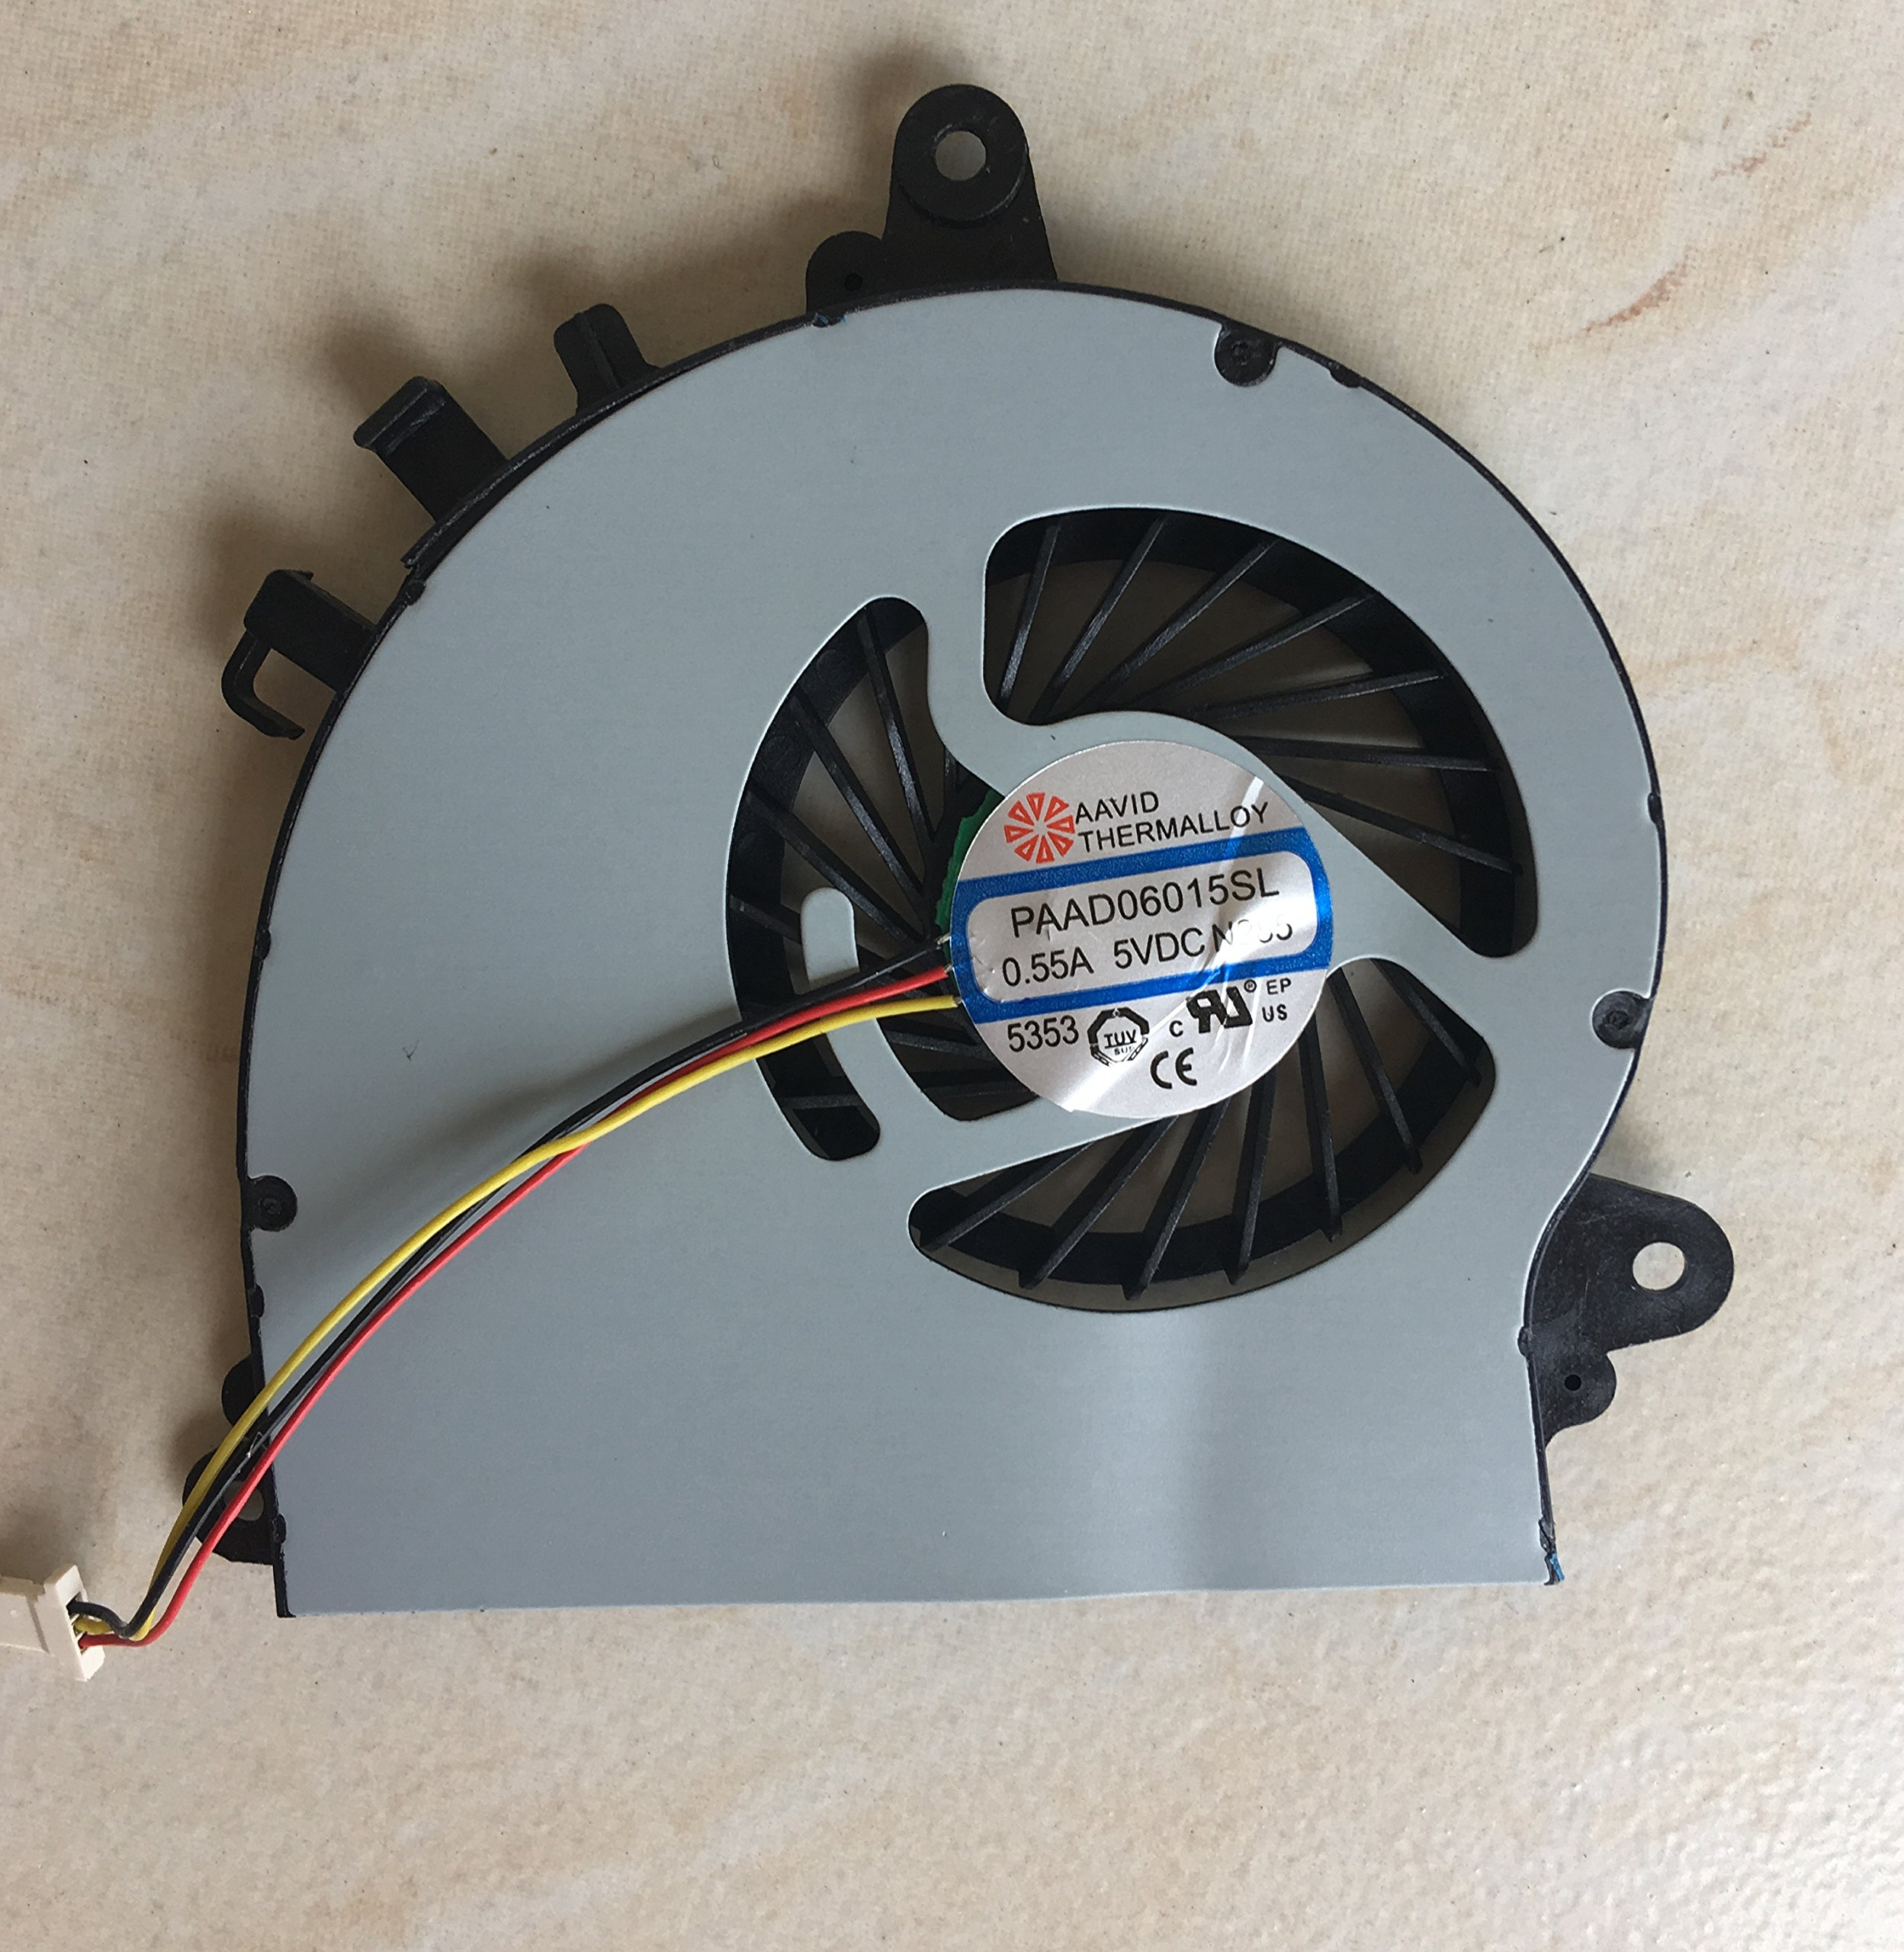 SZYJT New Laptop GPU Graphics Cards Cooling Cooler Fan For MSI GS70 GS72 GTX 765M AAVID PAAD06015SL 0.55A 5VDC N269 3 Pins